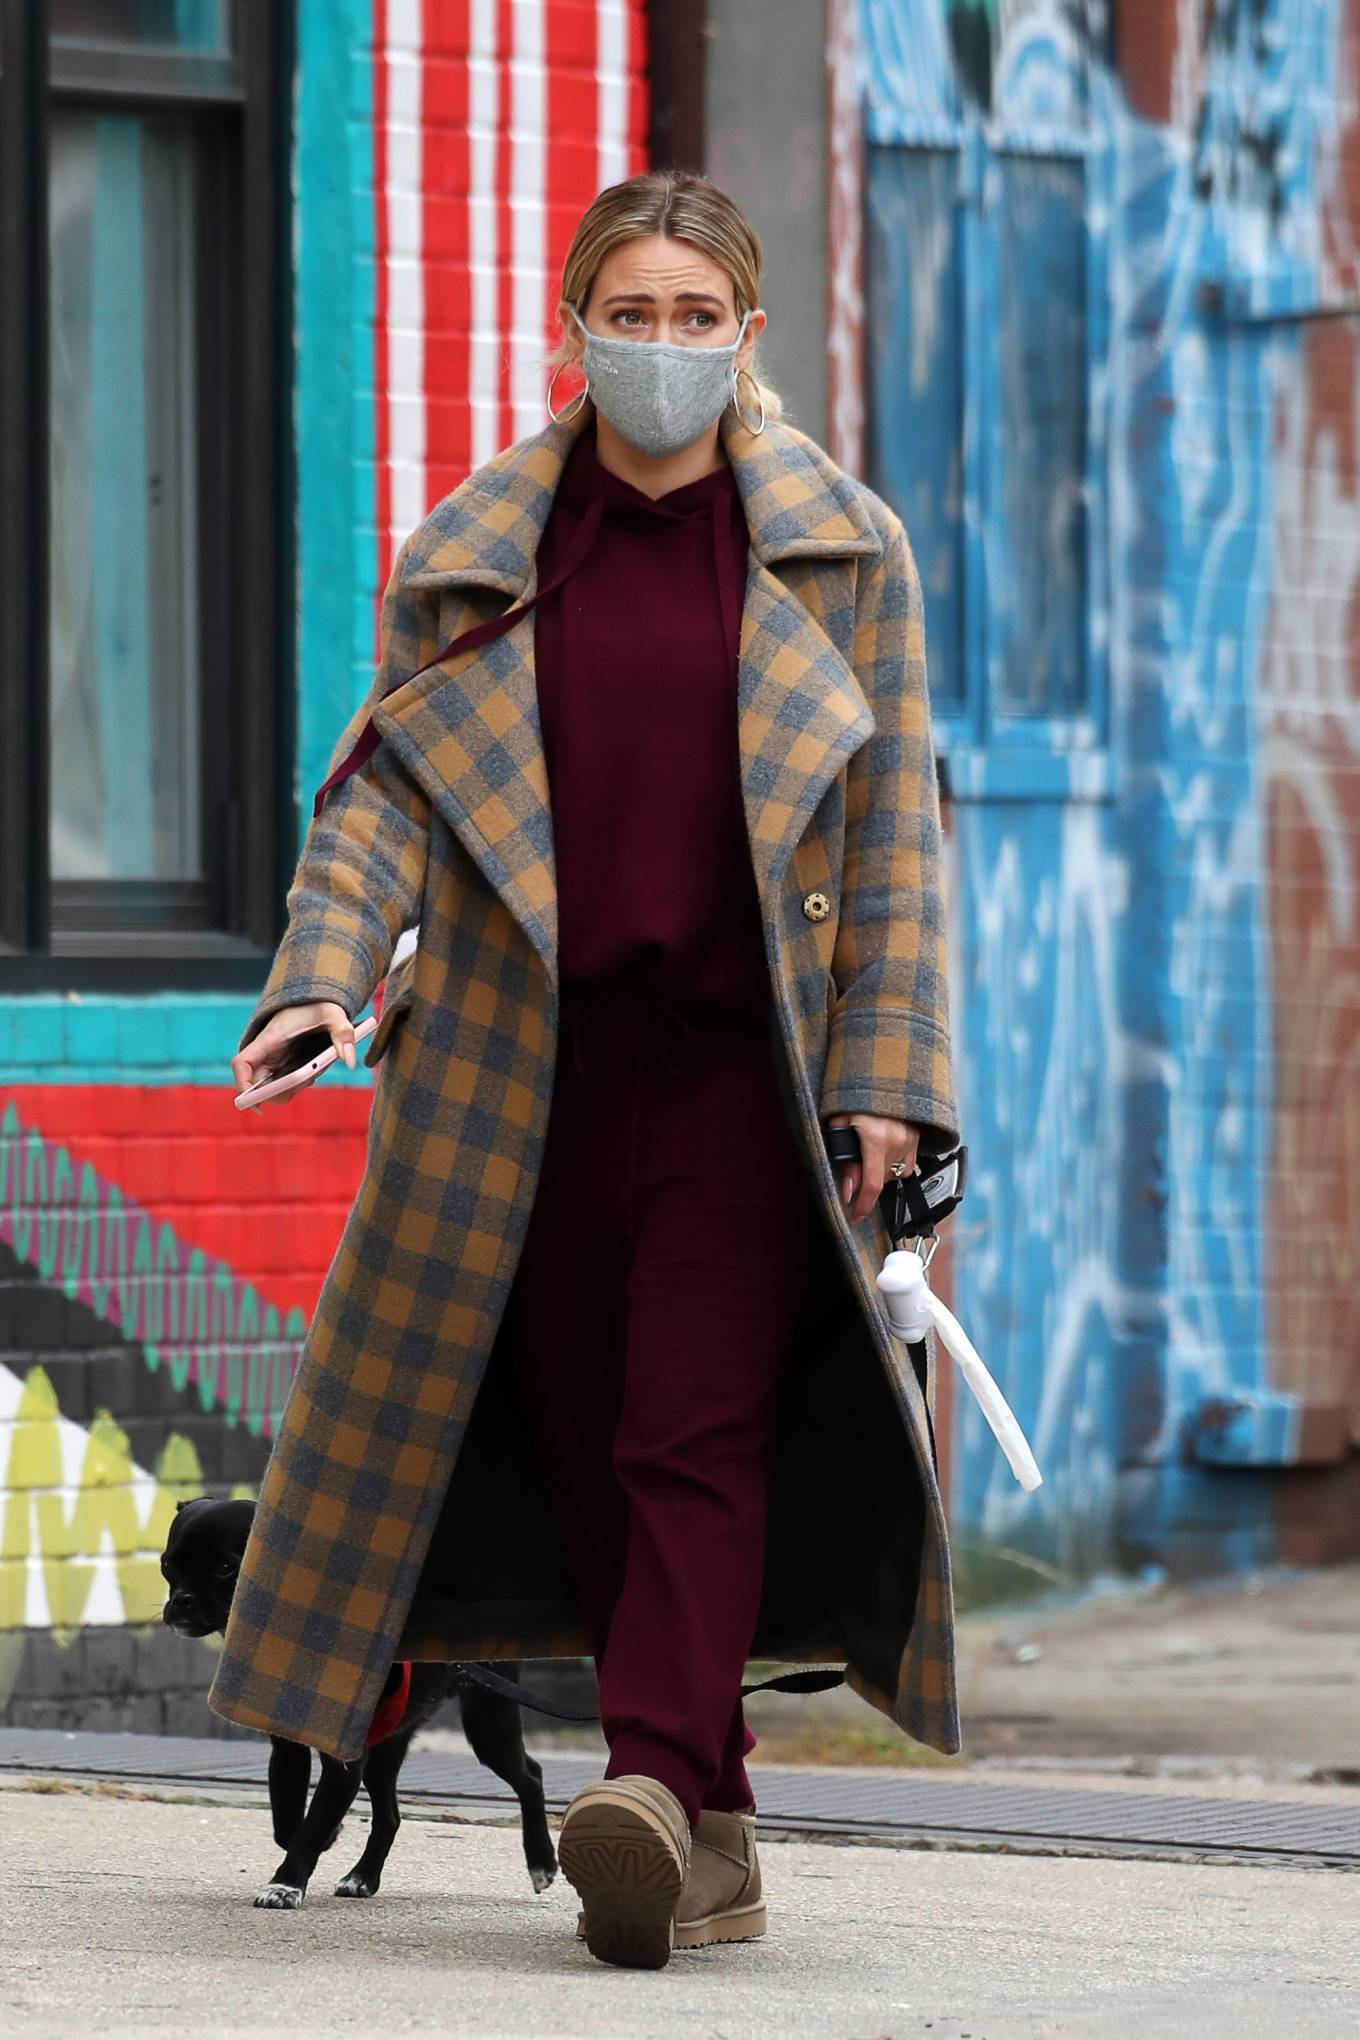 Hilary Duff - In a winter coat out in NYC